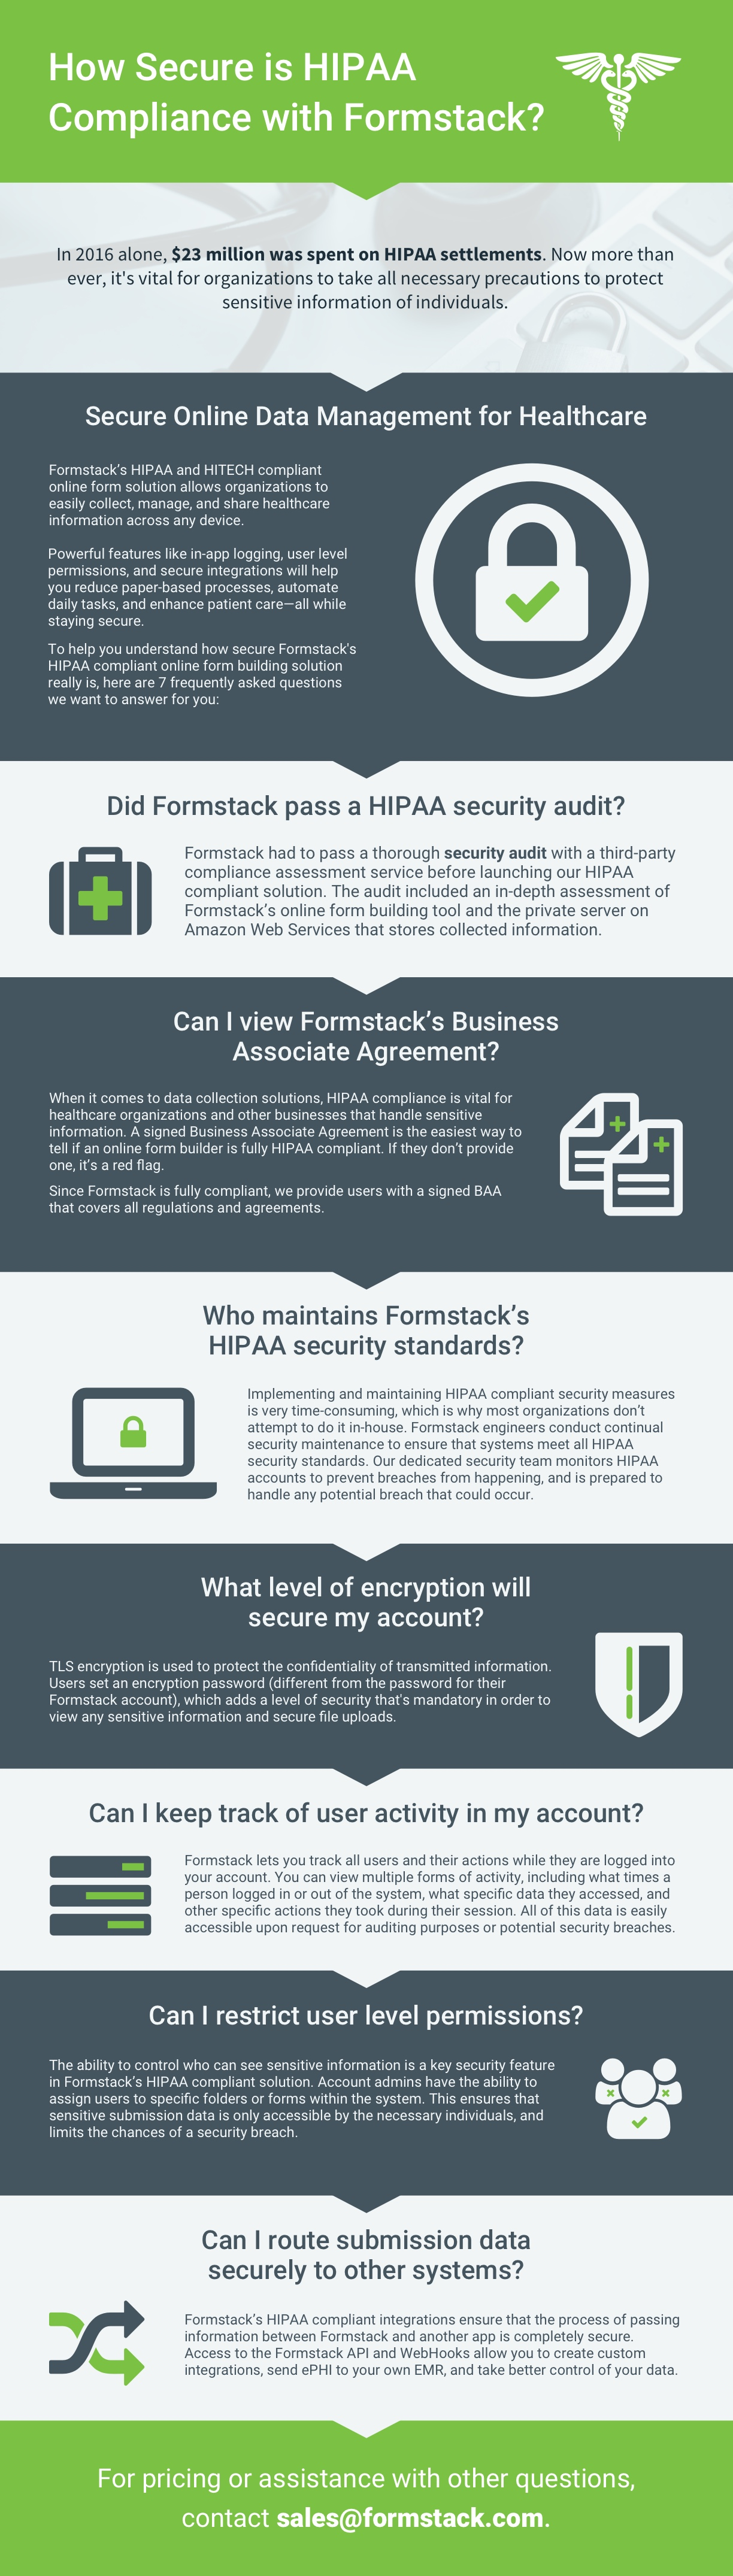 How Secure is HIPAA Compliance with Formstack?